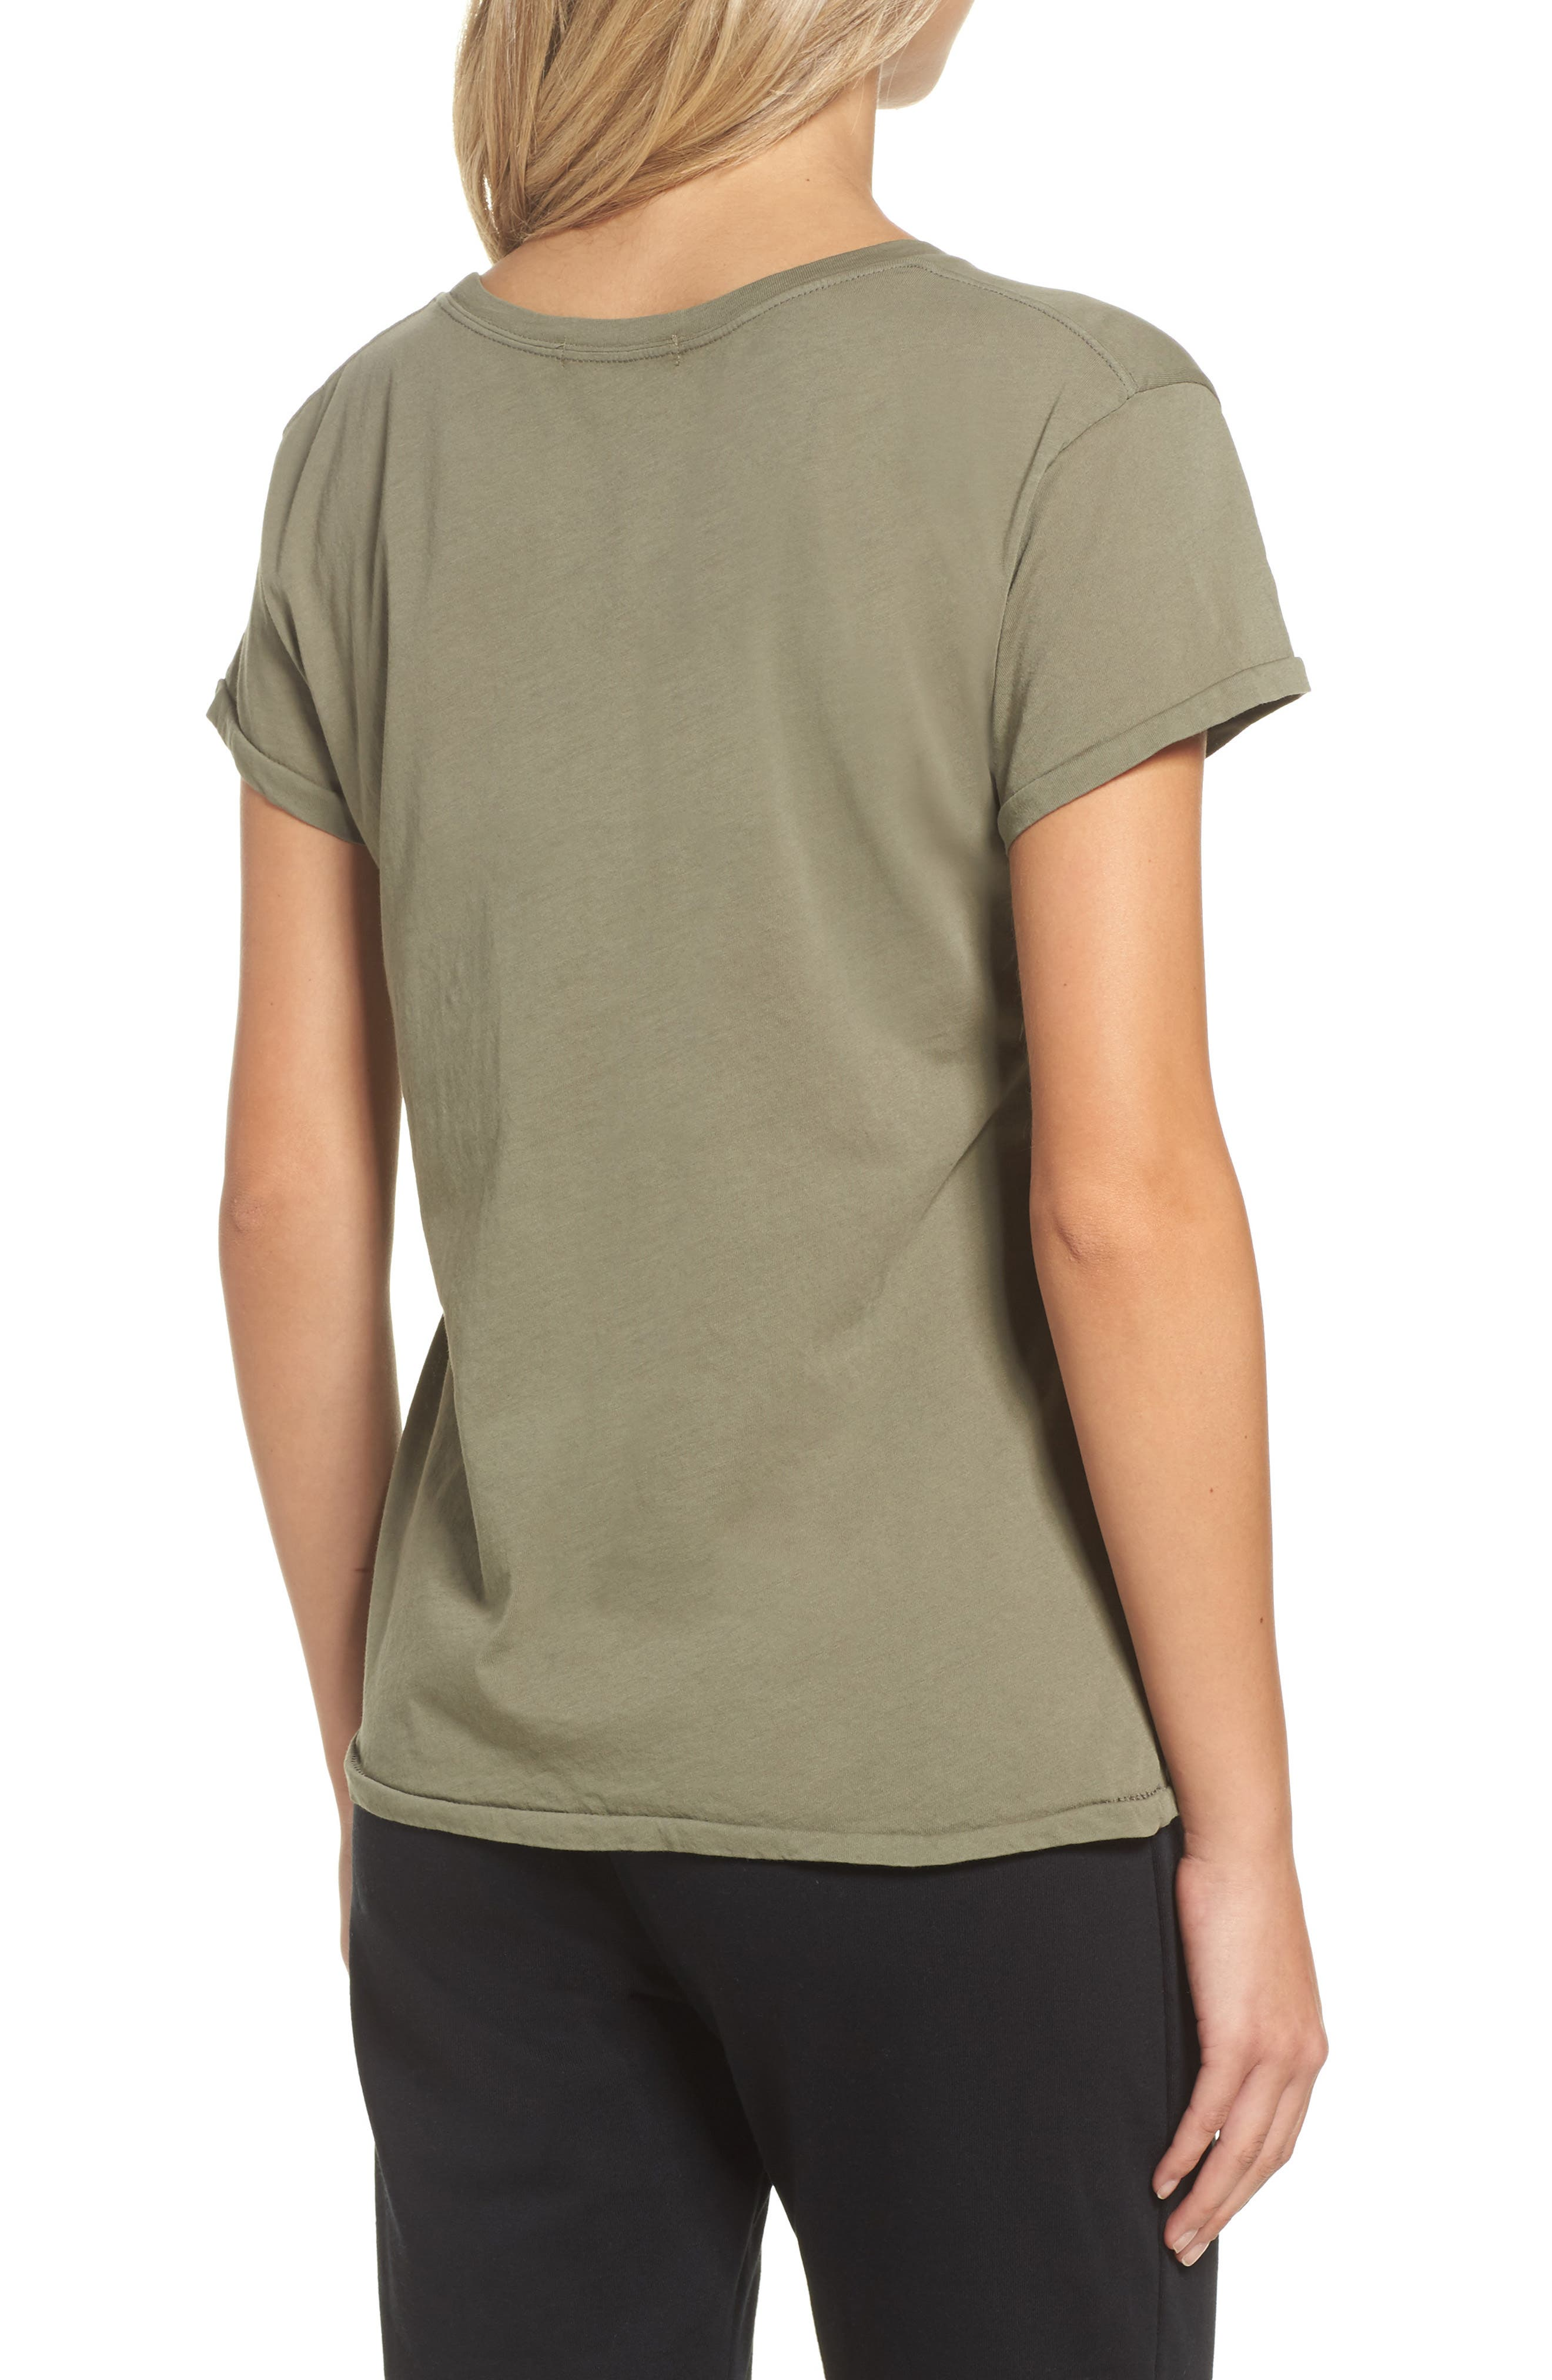 Tee,                             Alternate thumbnail 2, color,                             Army